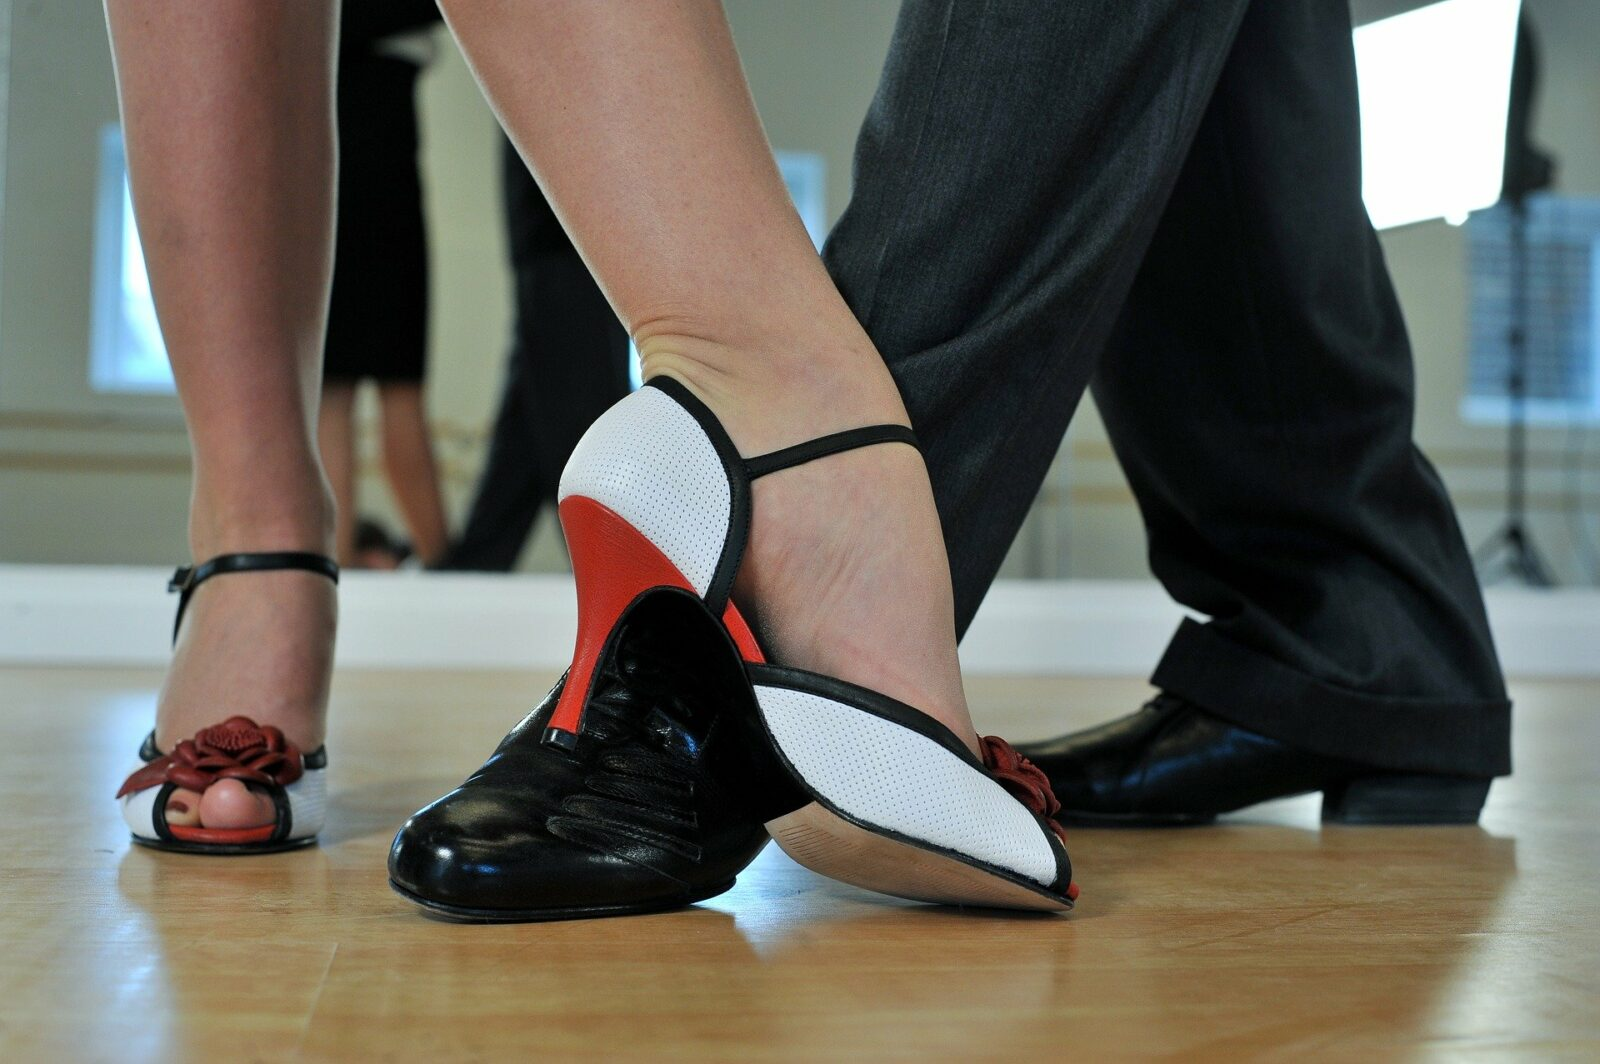 close up of man and woman's dancing feet in dress shoes